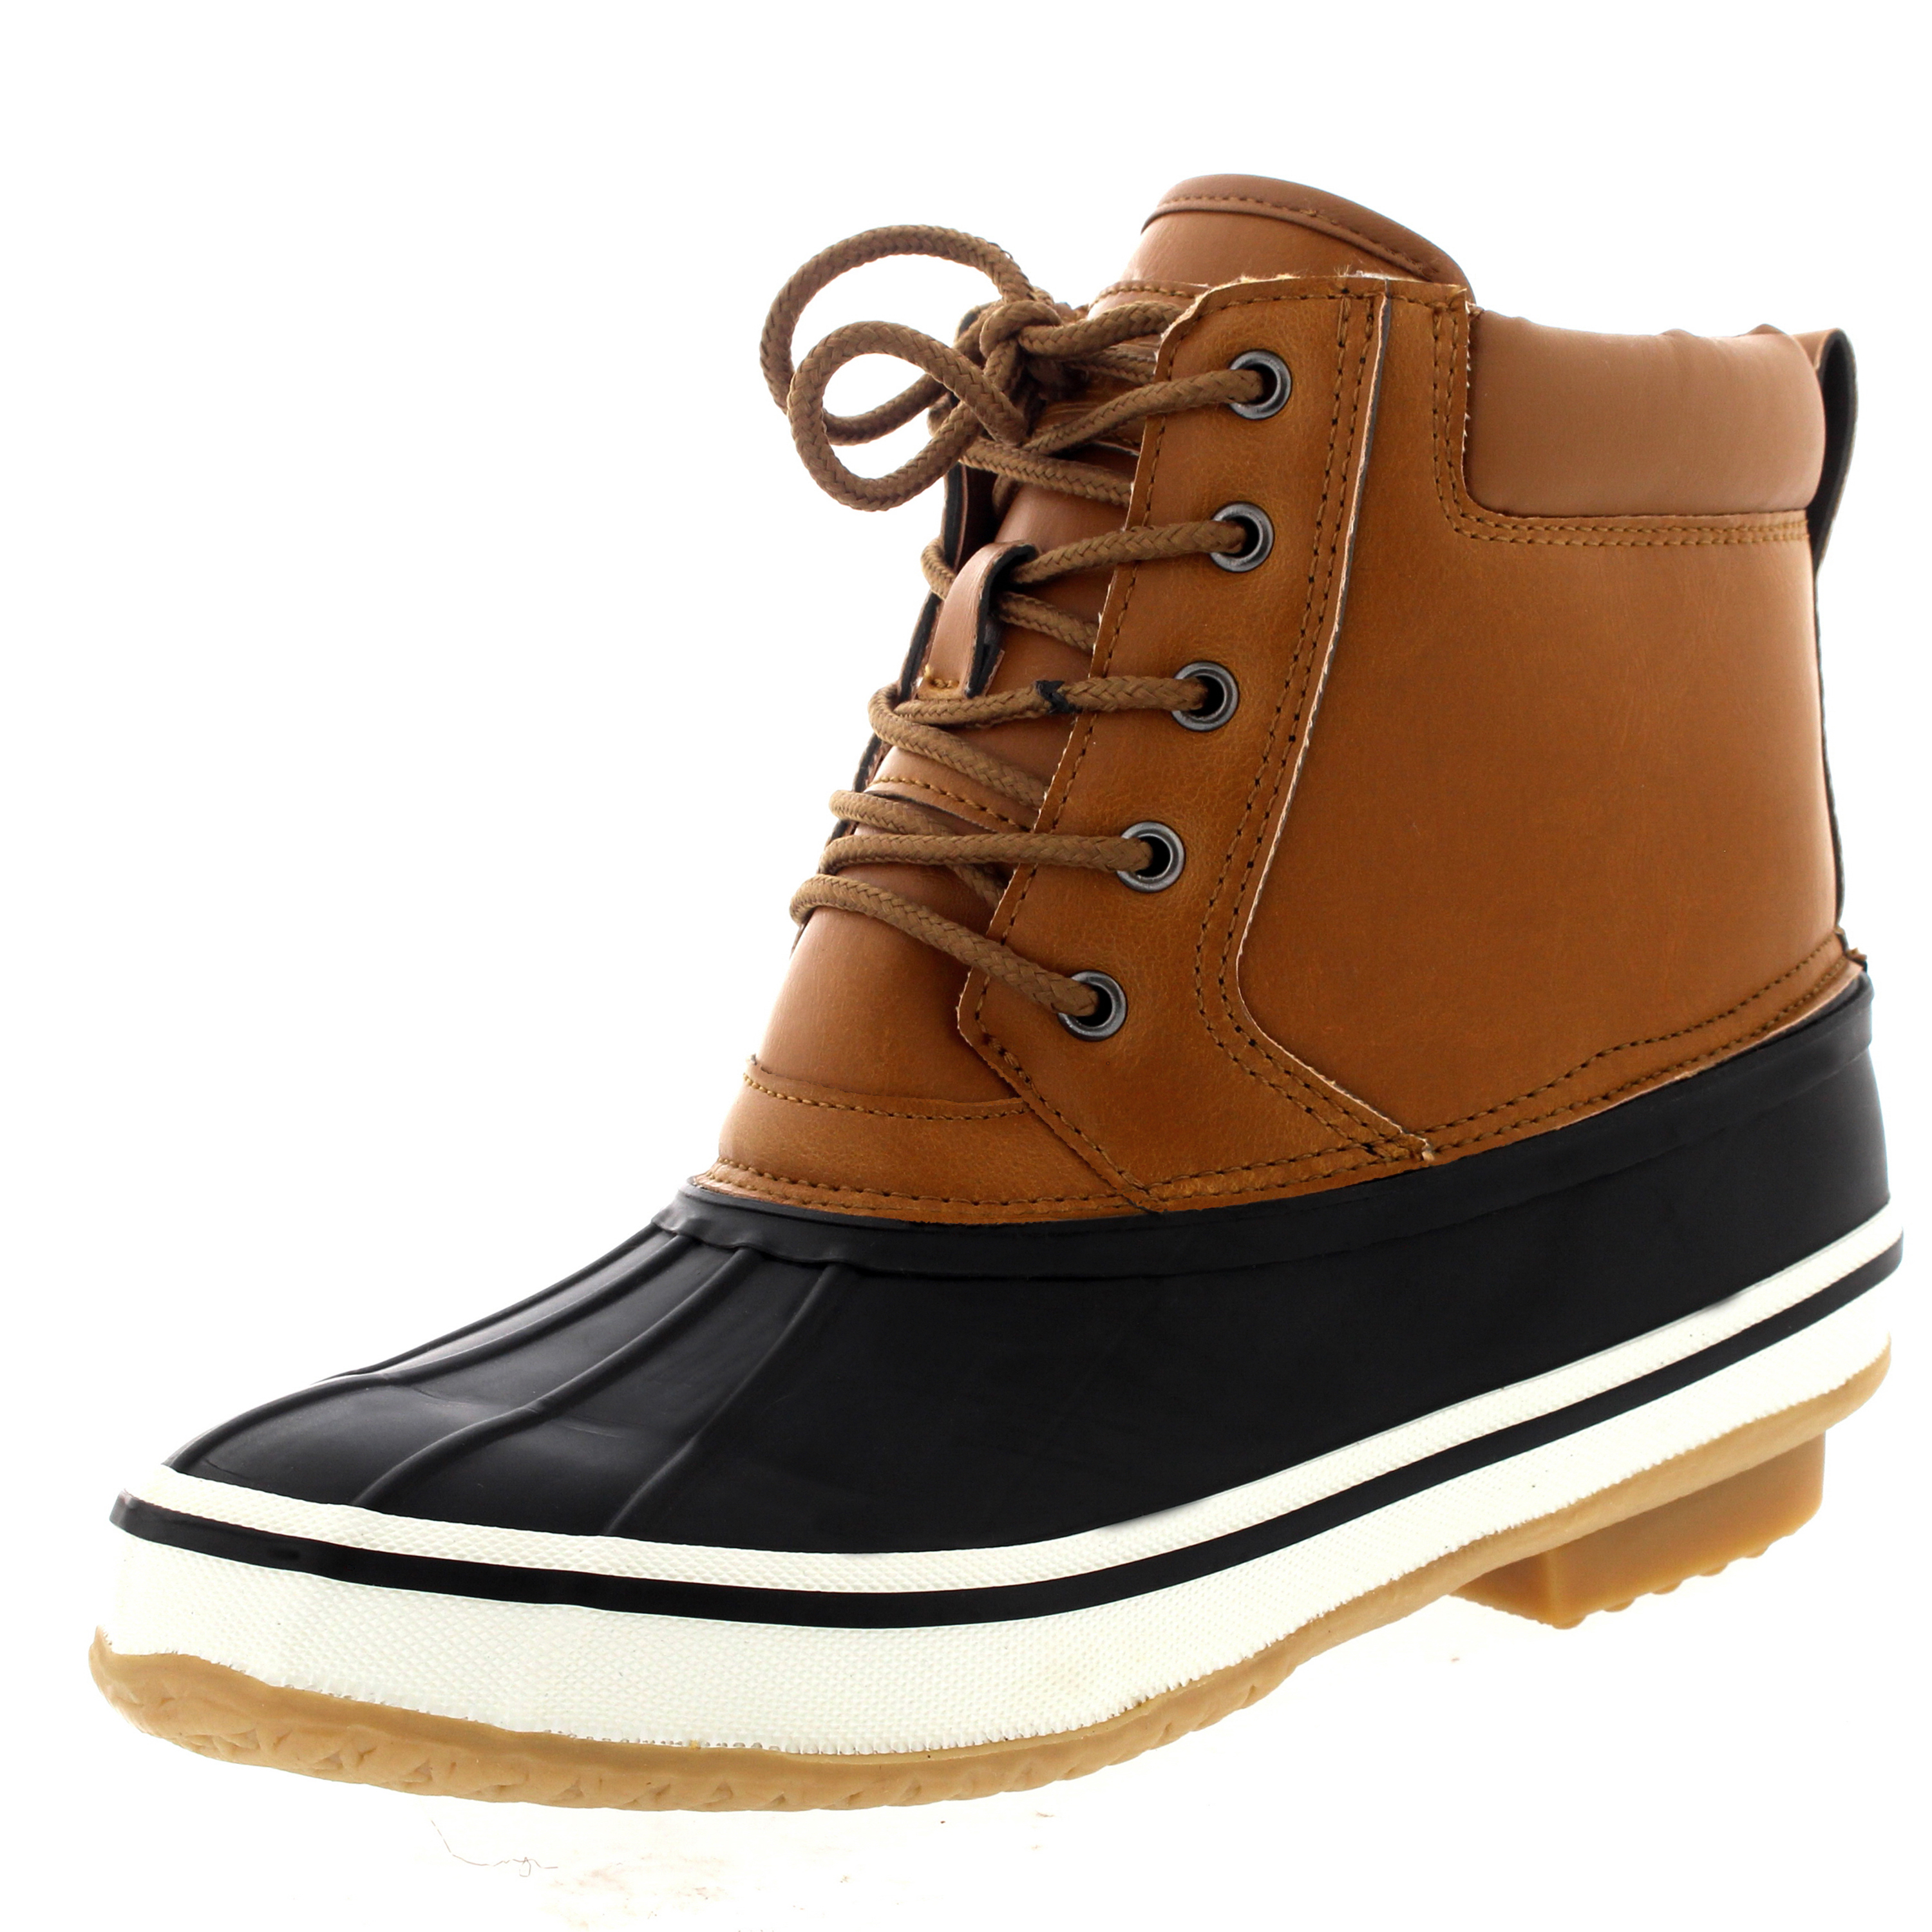 cheapwomensclothes.tk's Columbus Day sale includes the iconic cheapwomensclothes.tk Boots. Save 25% on the boots before they sell out this year, plus pretty much everything else on the site.